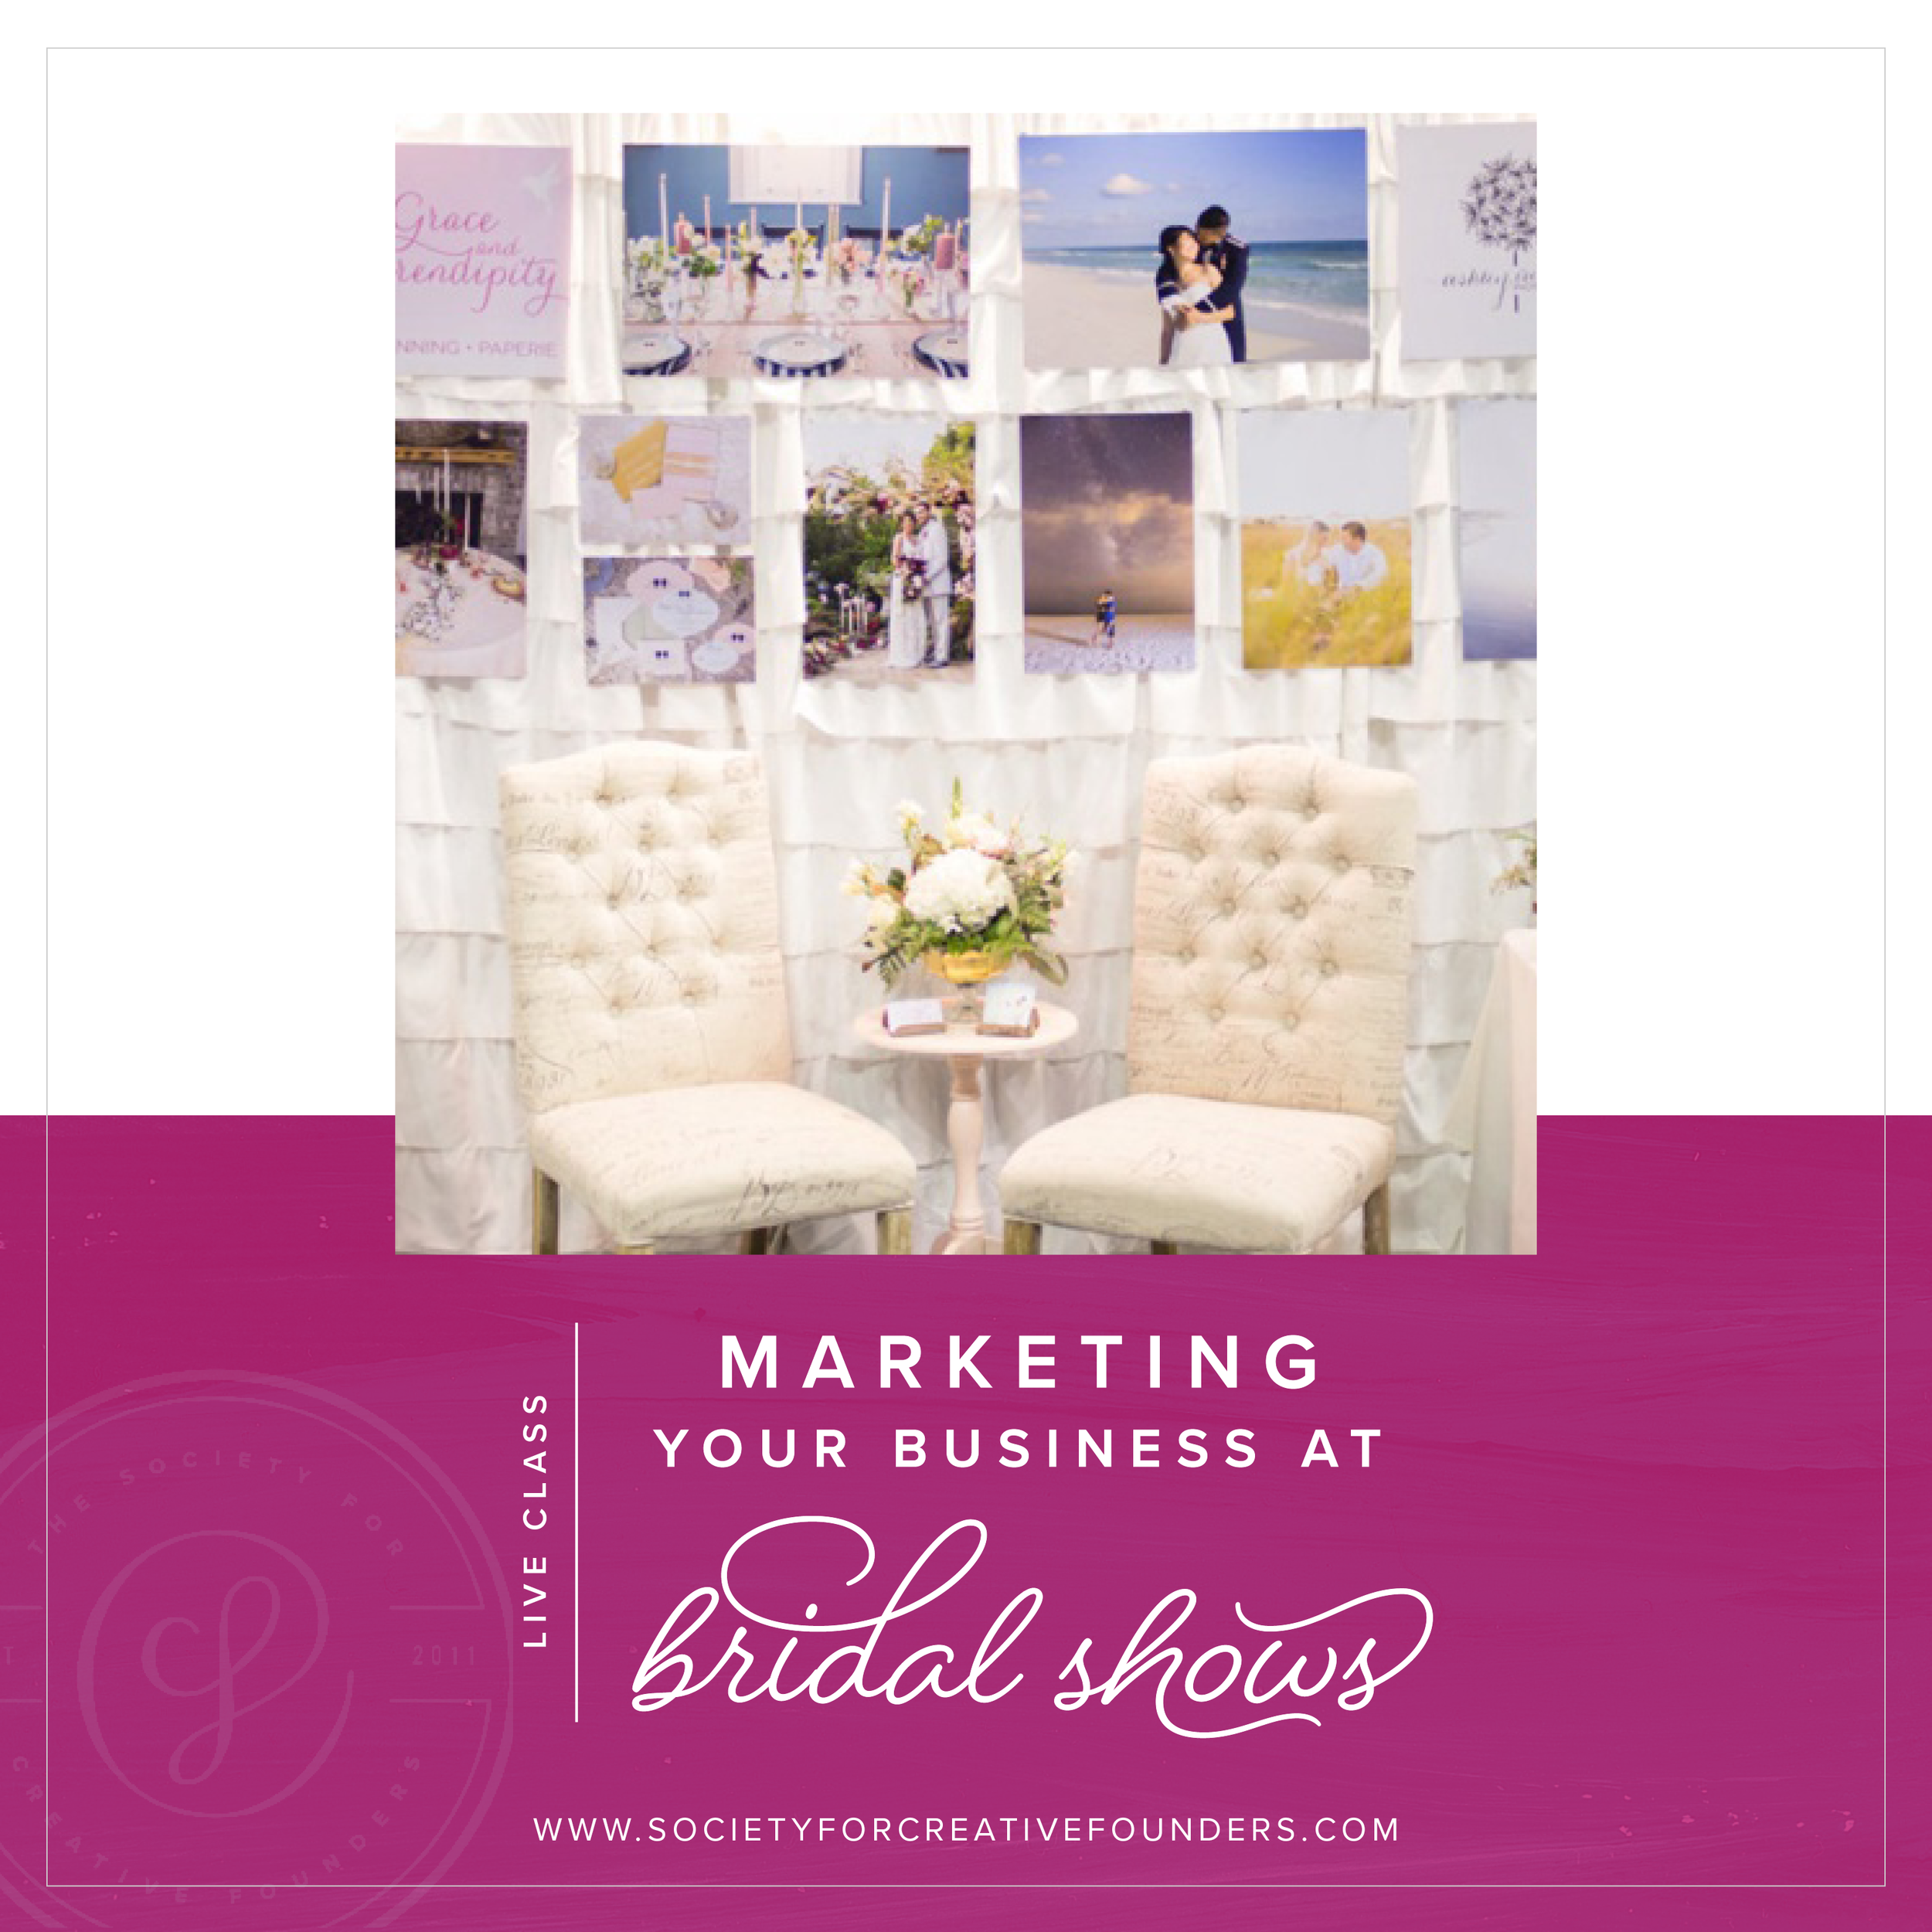 Bridal Show Marketing Ideas - Live Class with Society for Creative Founders